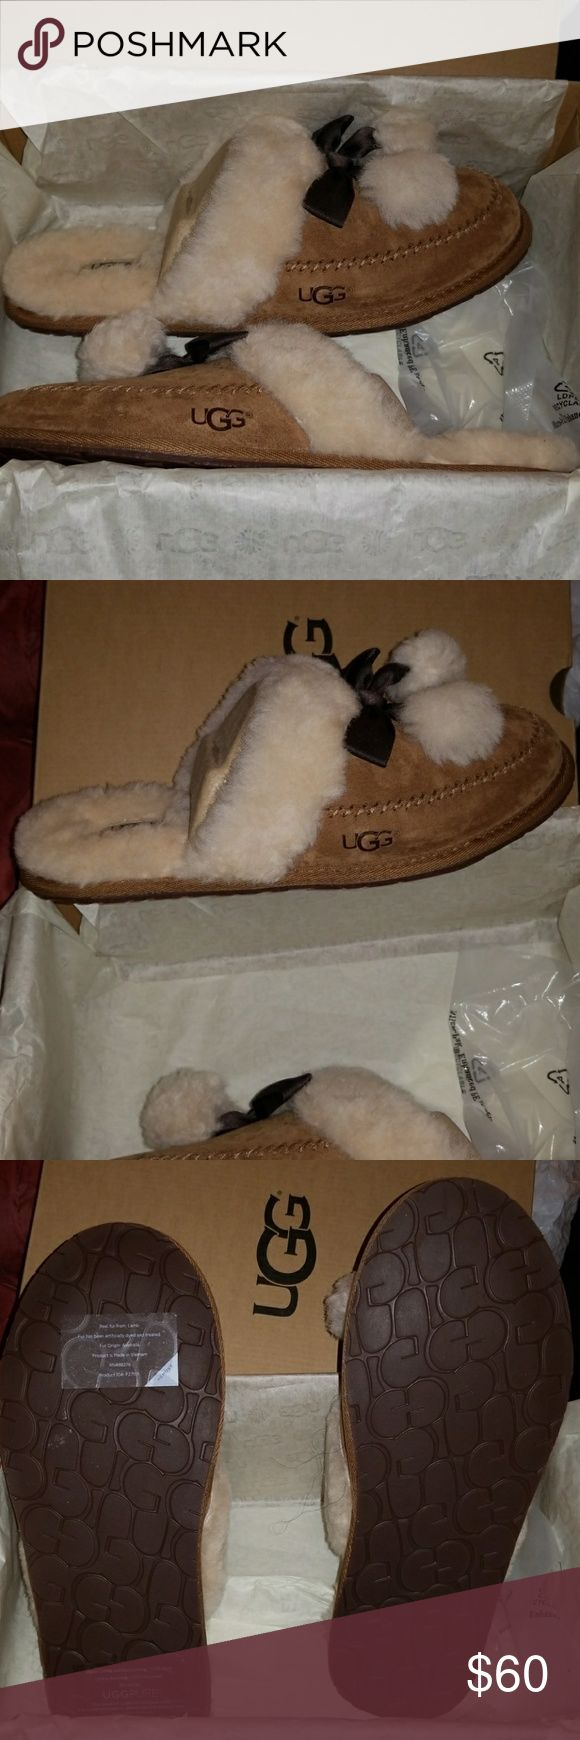 Ugg Slippers Brand new Ugg slippers, great for this season! Sold out online  at most Ugg stores! UGG Shoes Slippers